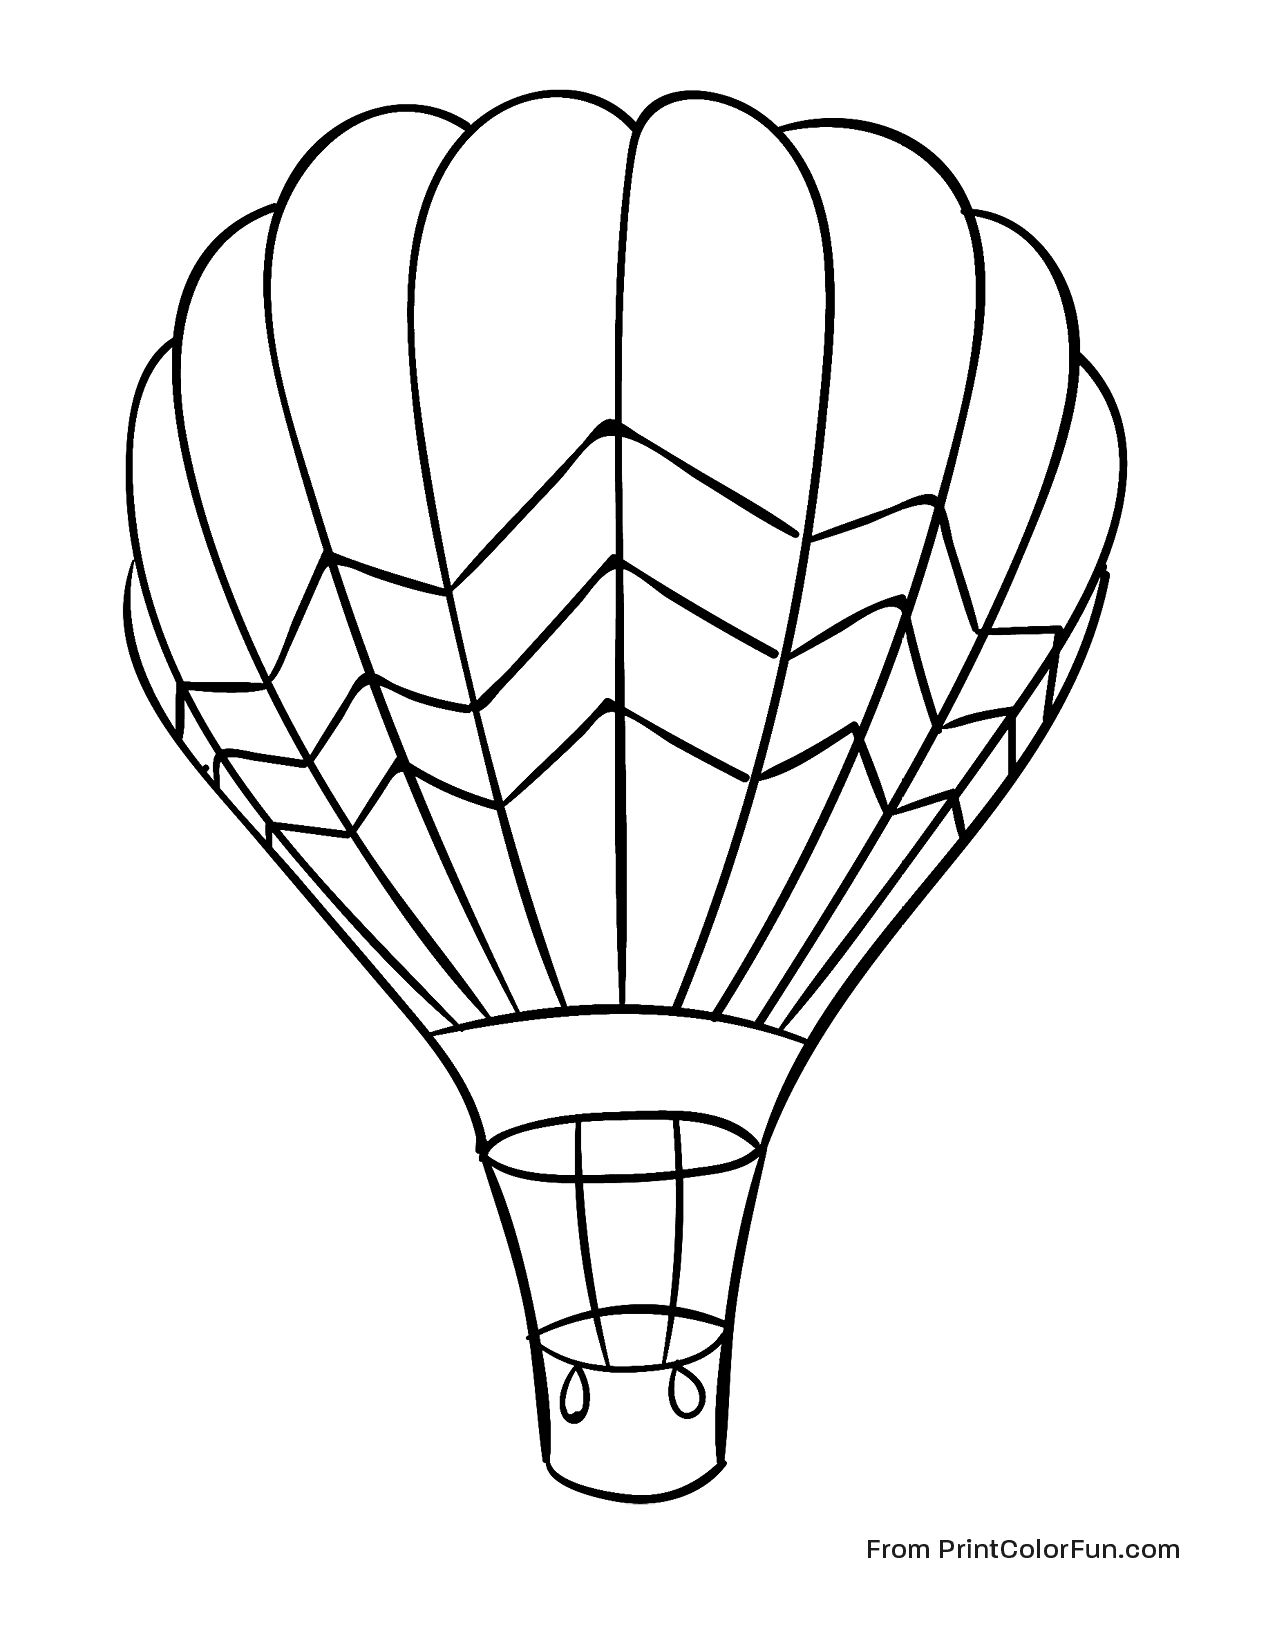 coloring balloon drawing for kids drawing hot air balloon coloring pages hot air balloon coloring balloon drawing for kids